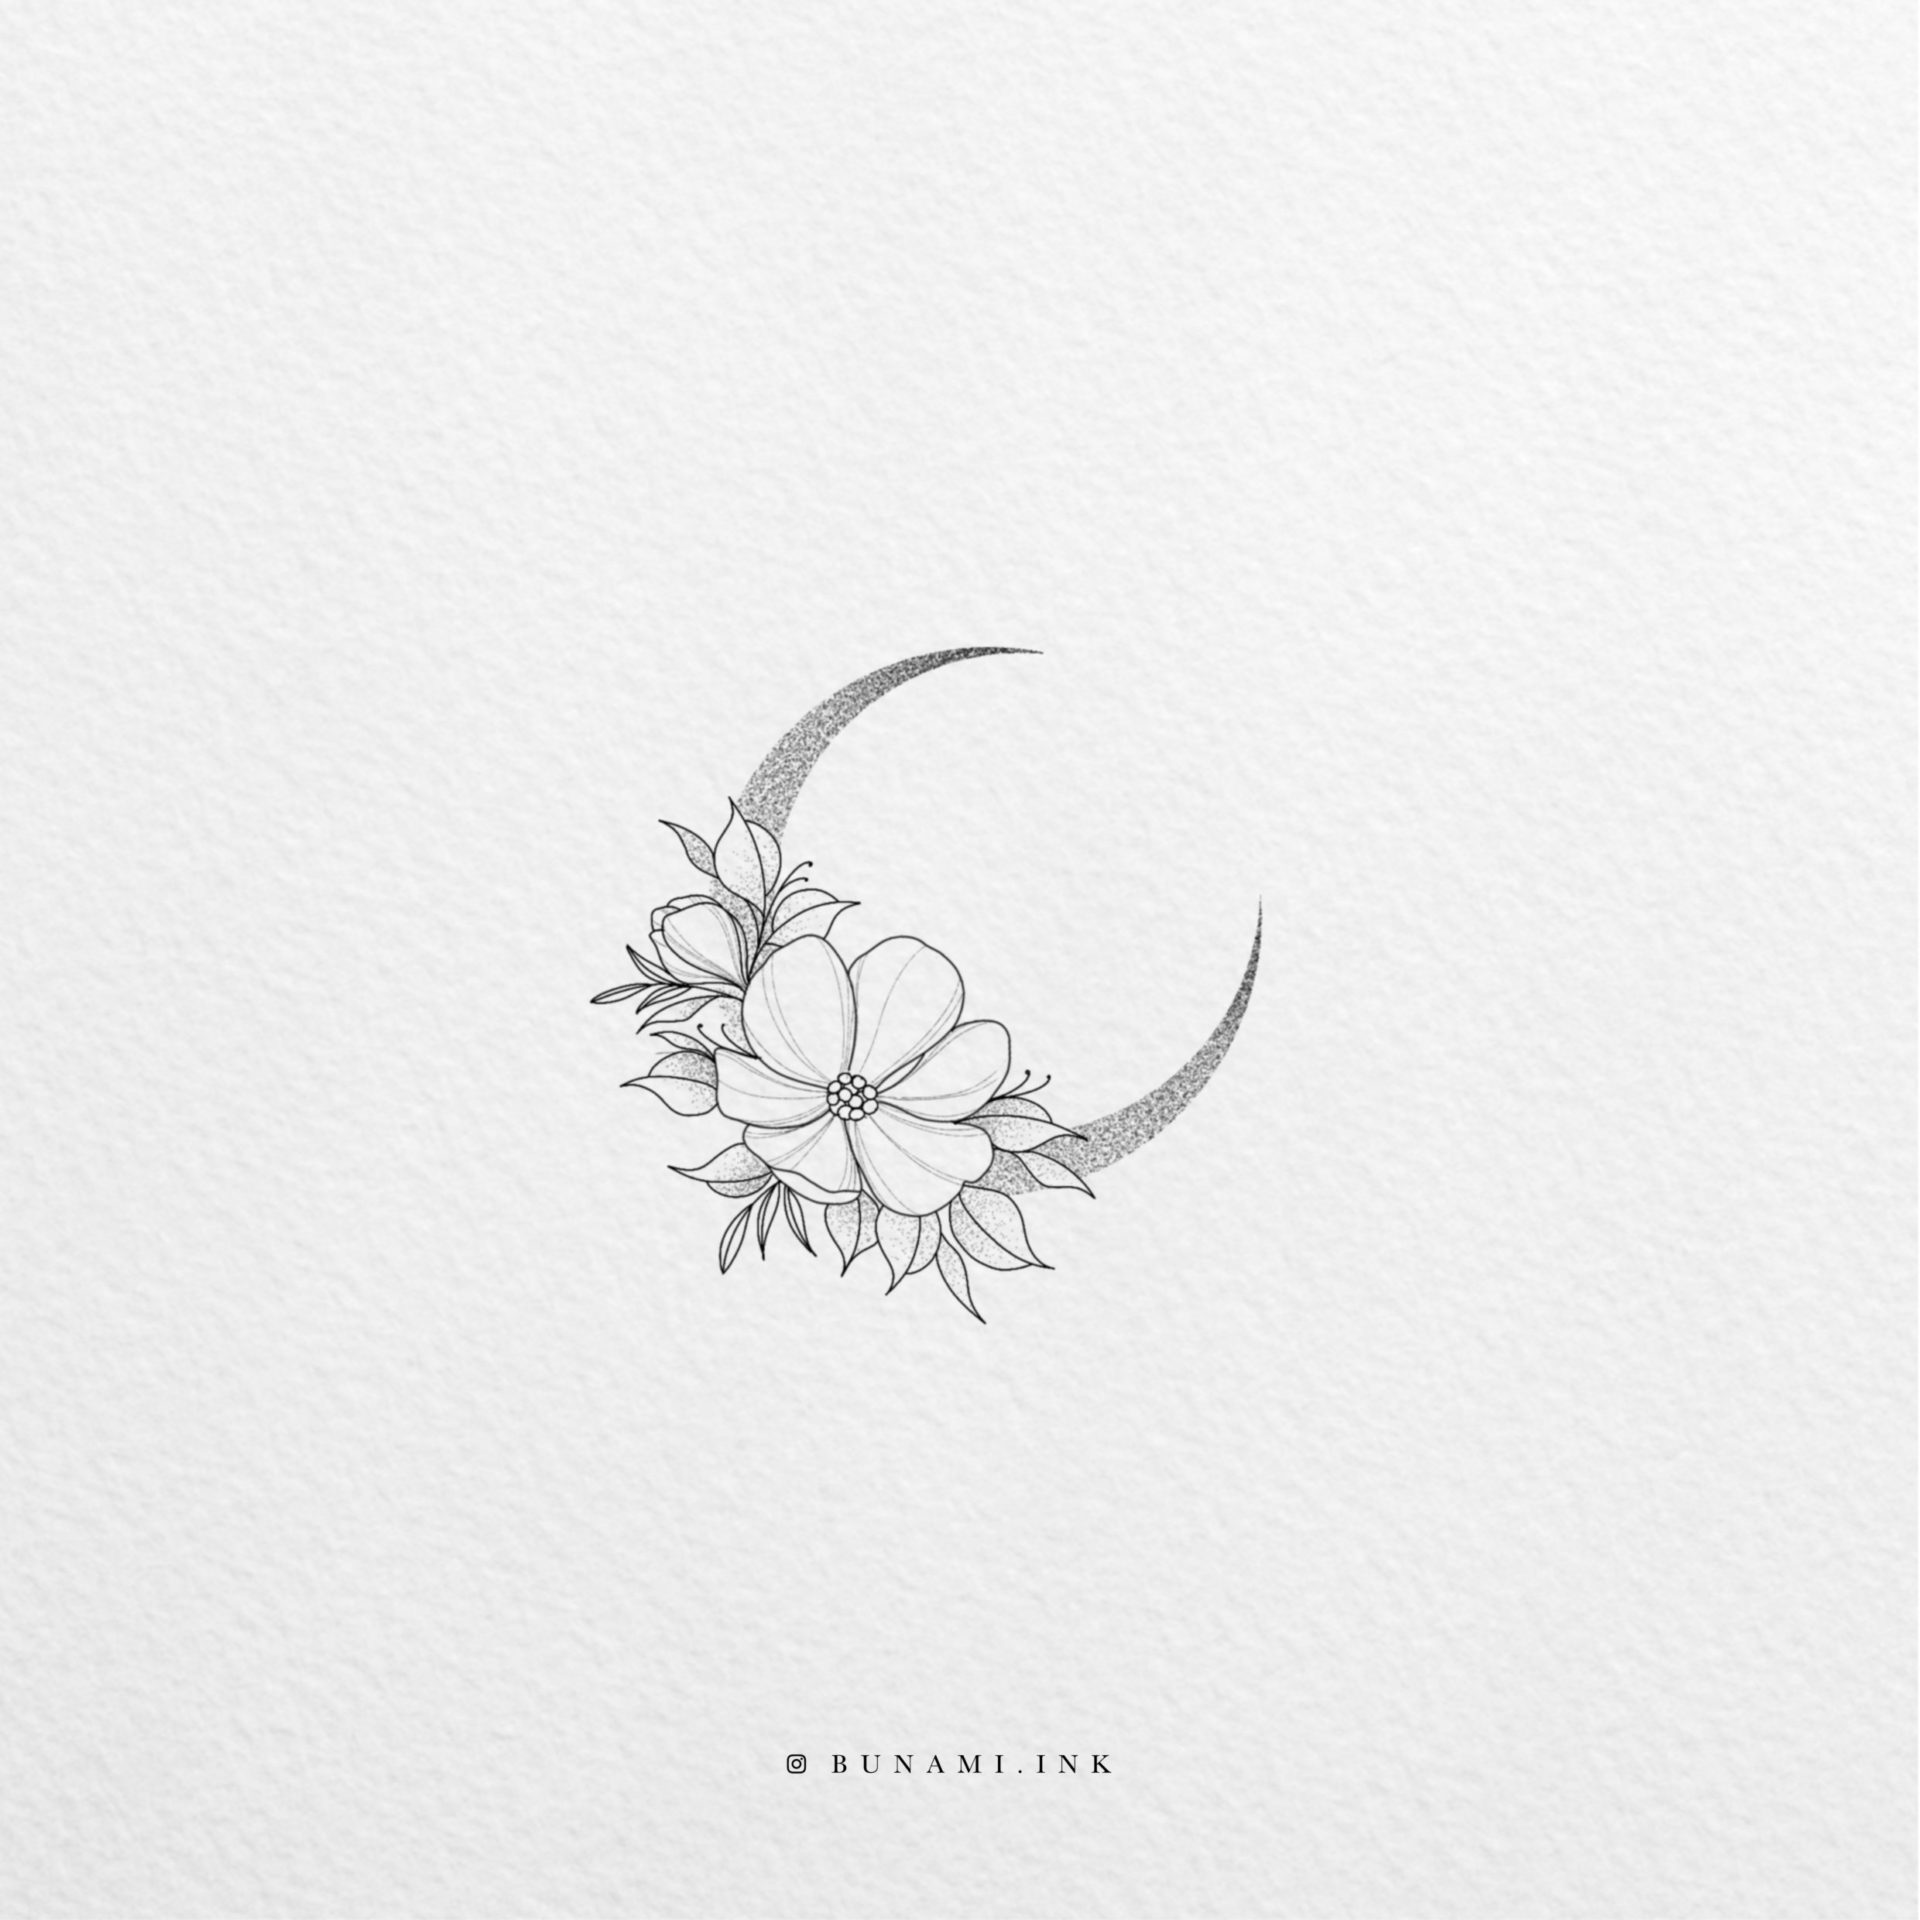 crescent_moon_and_wild_flowers_2019-12-20